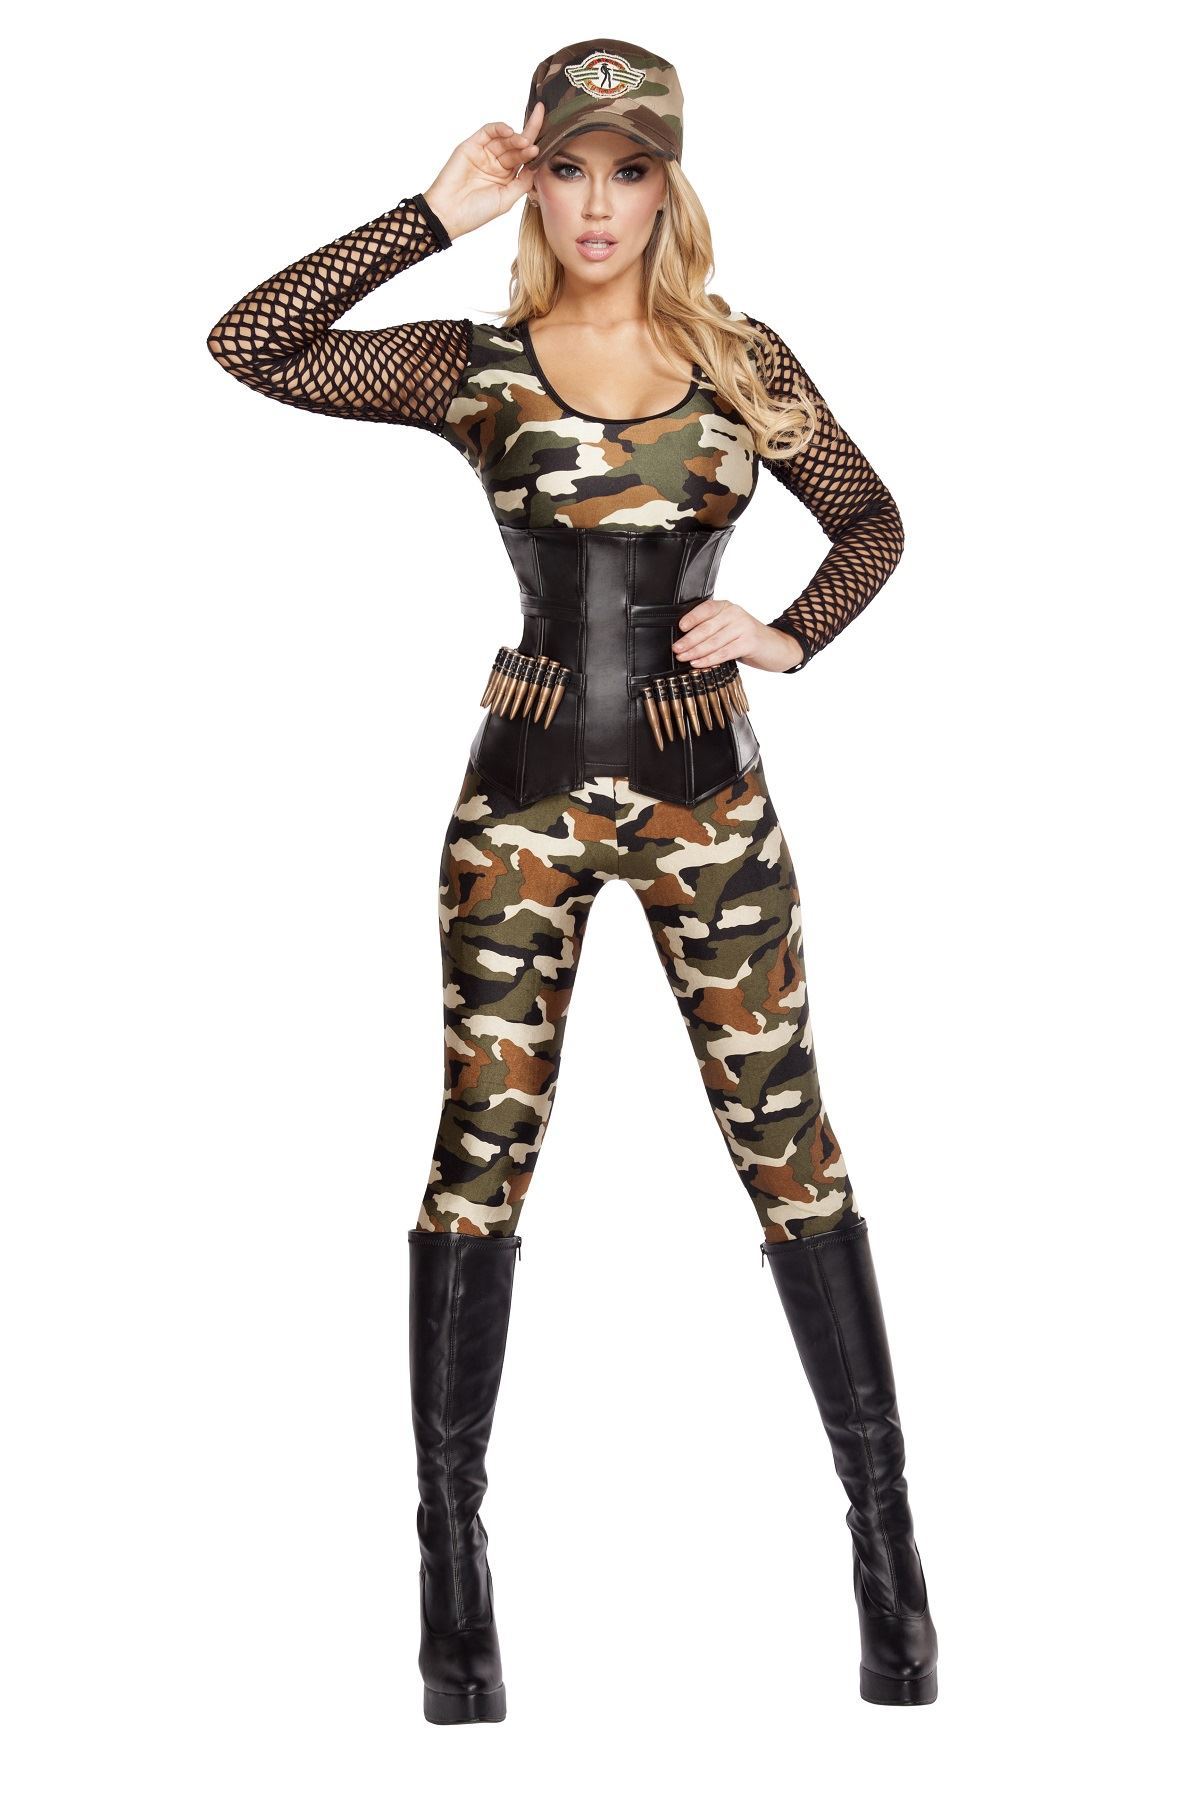 Halloween costumes for women police-8155